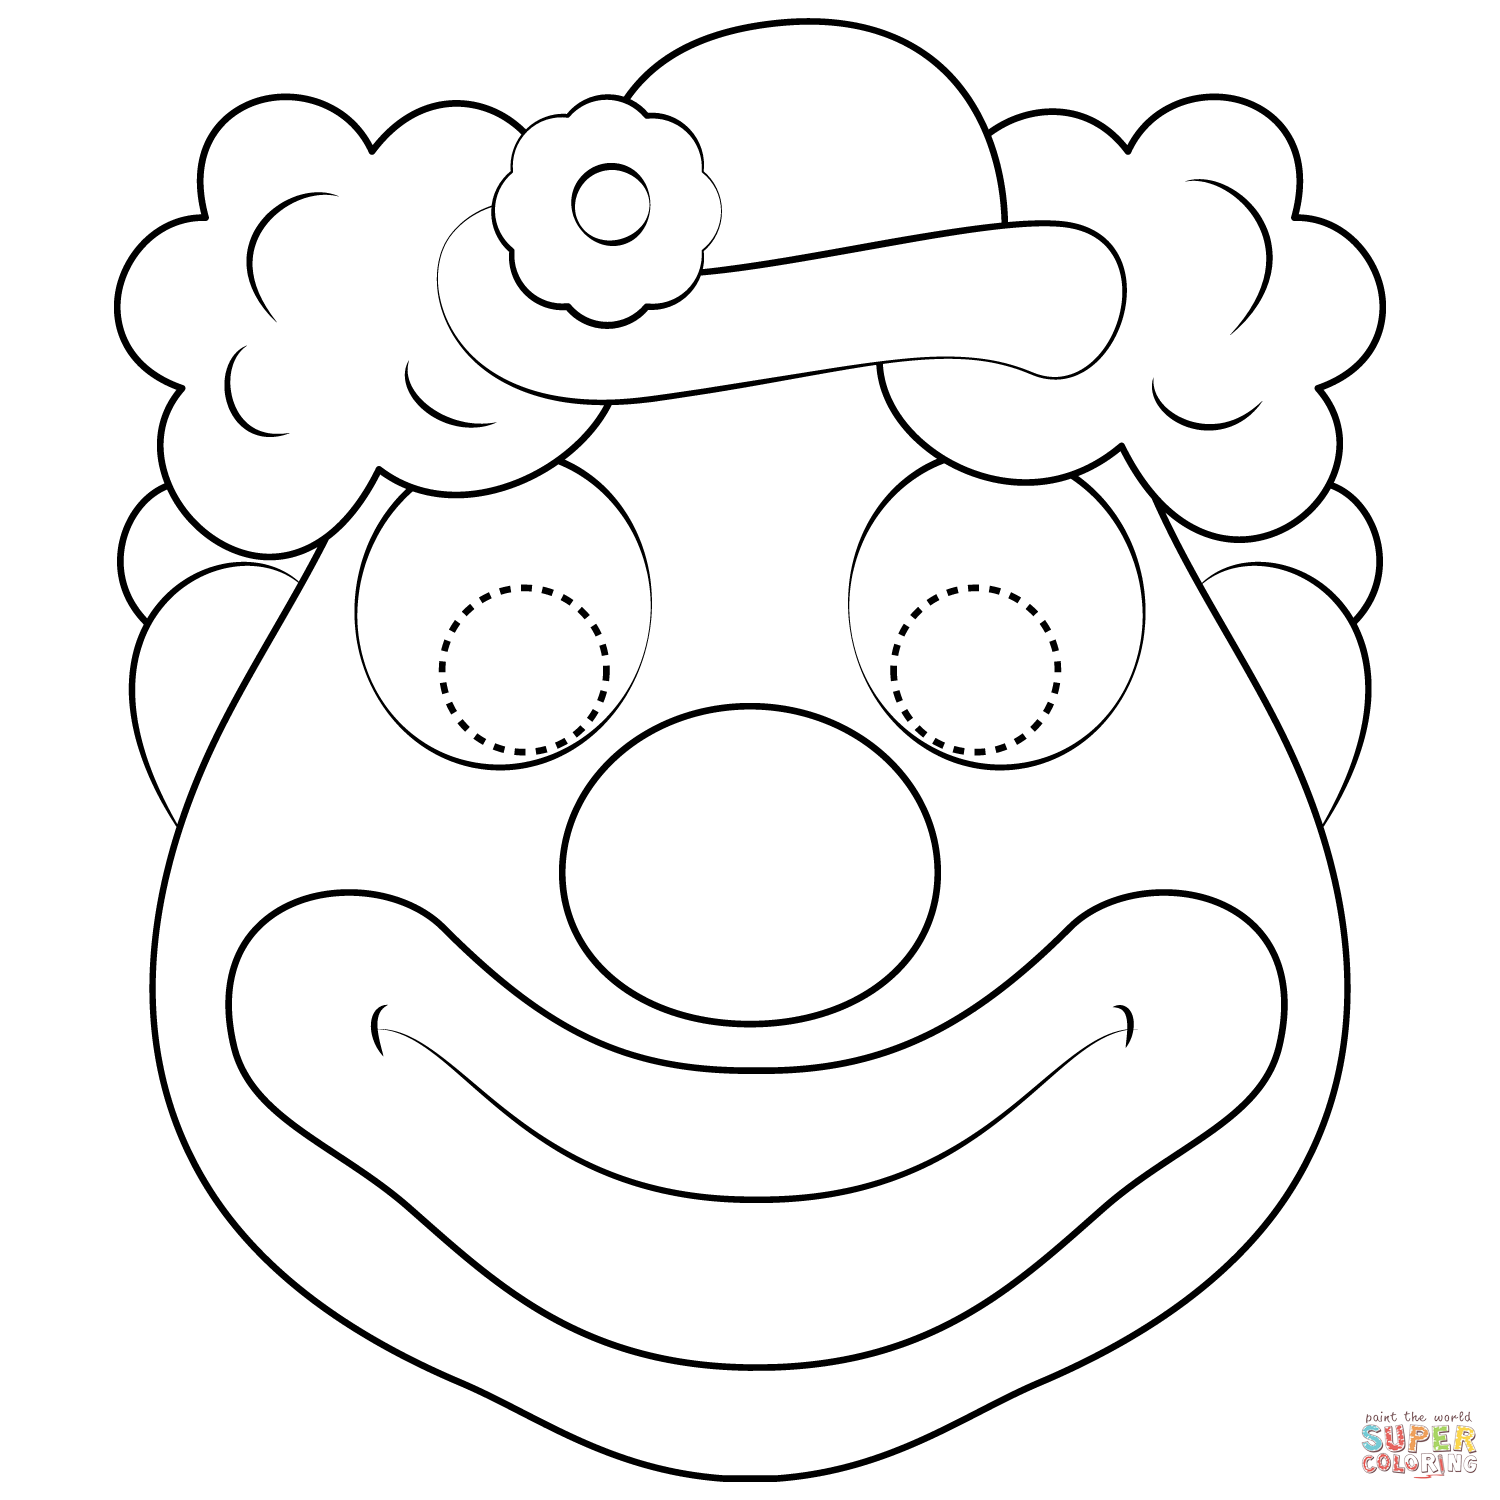 Clown Mask Coloring Page Free Printable Coloring Pages Printable Coloring Pages Free Printable Coloring Pages Free Printable Coloring